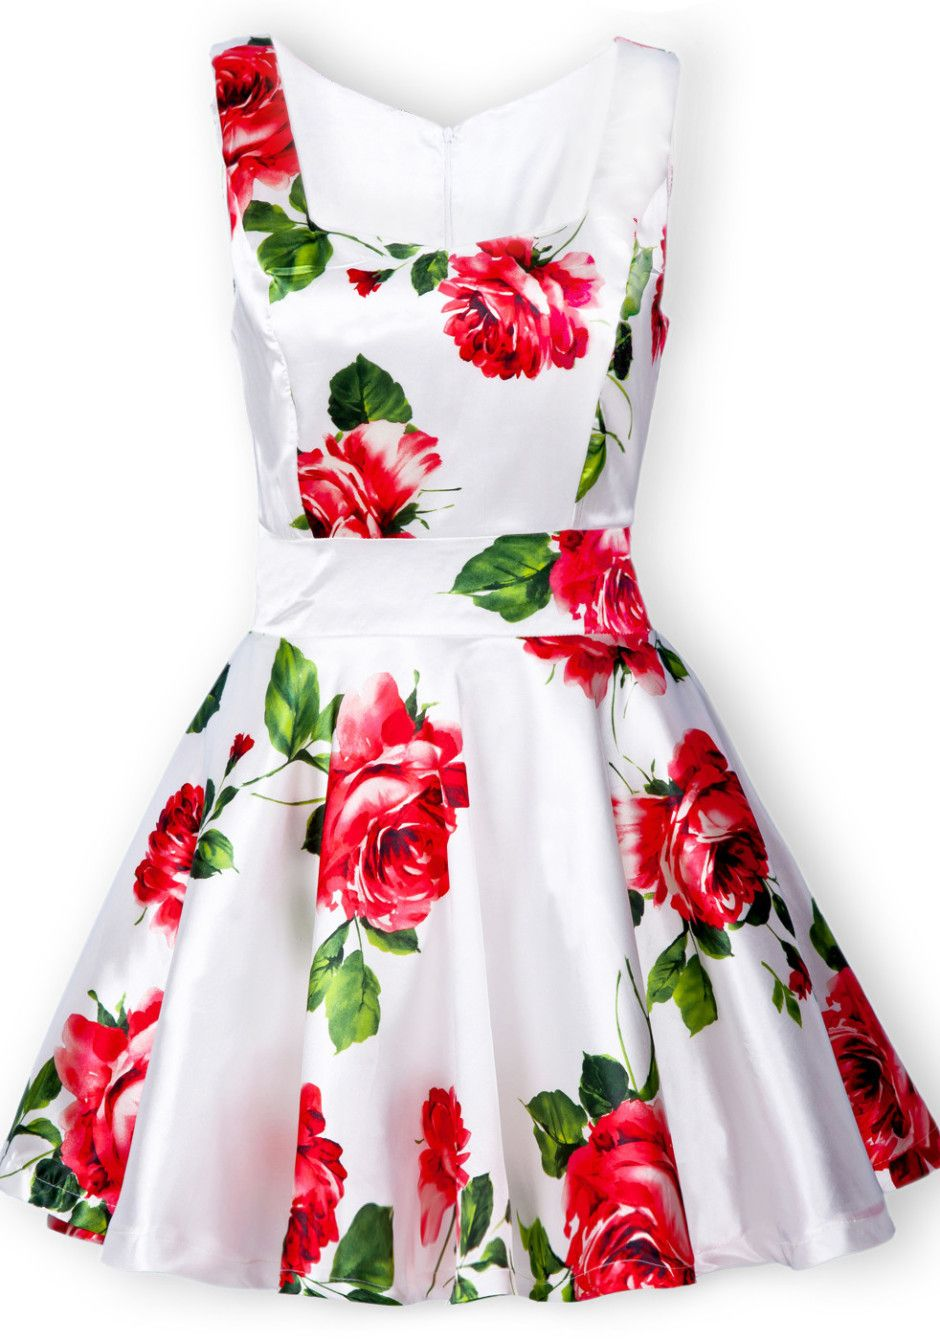 17 Best Images About Blue Velvet On Pinterest Red Flowers White Dress And Photography